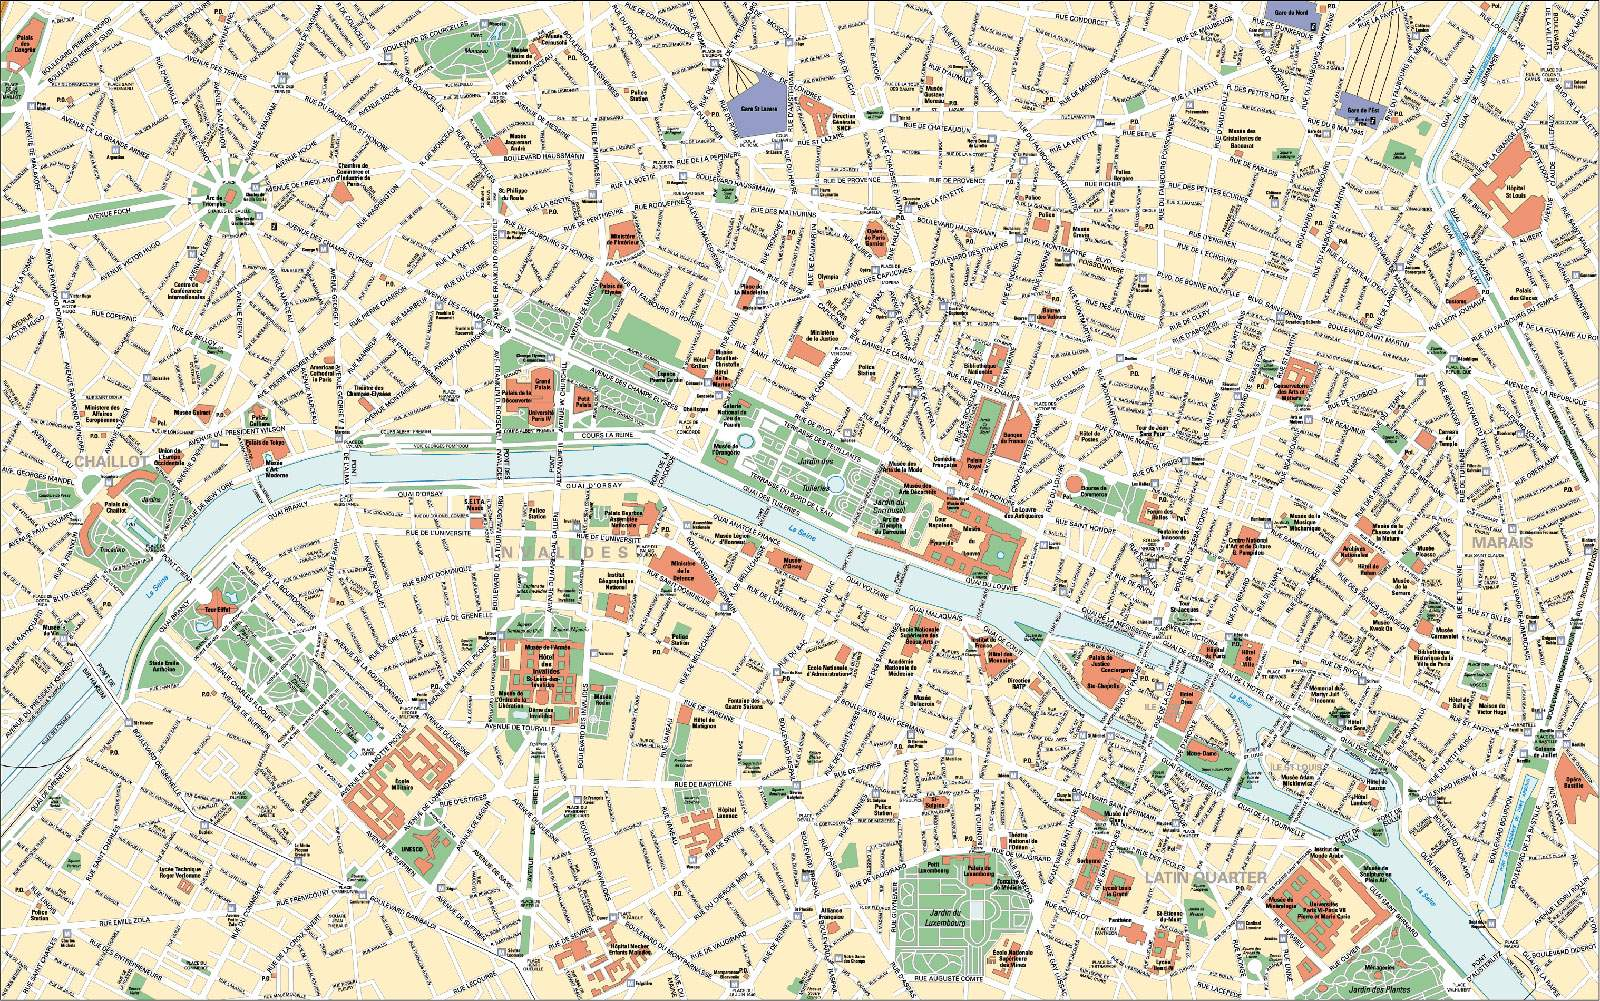 Large Paris Maps For Free Download And Print High Resolution And